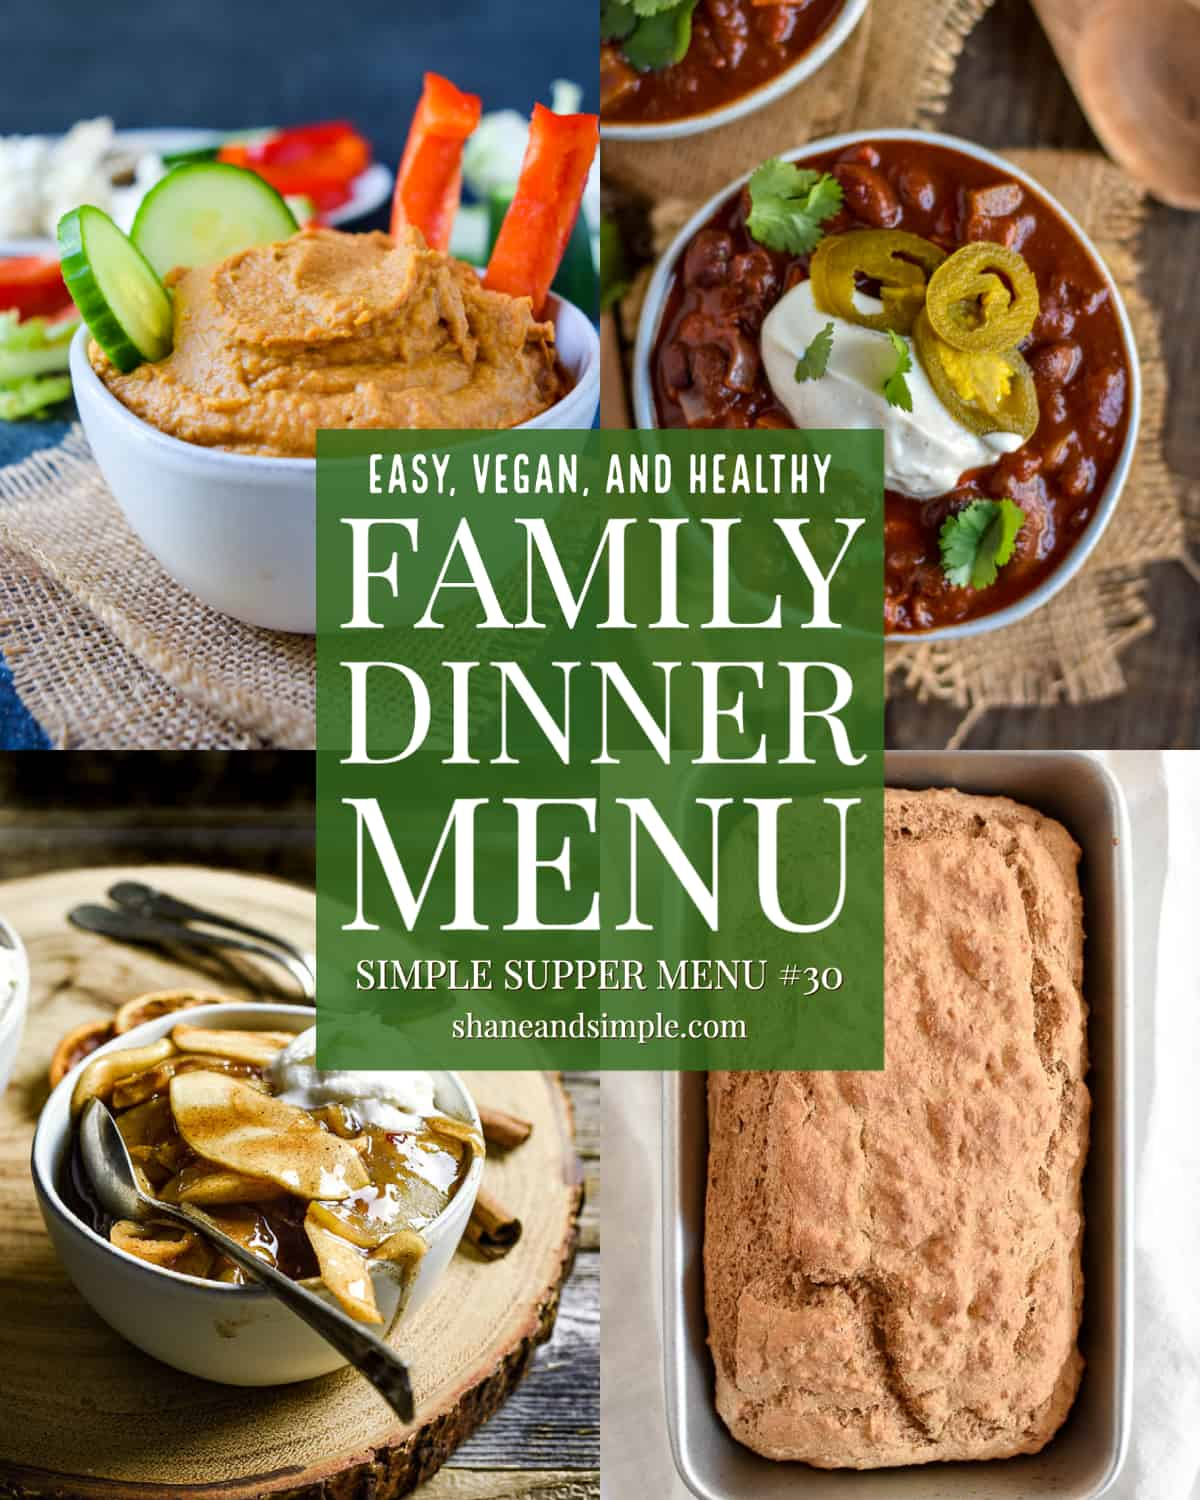 simple supper menu #30